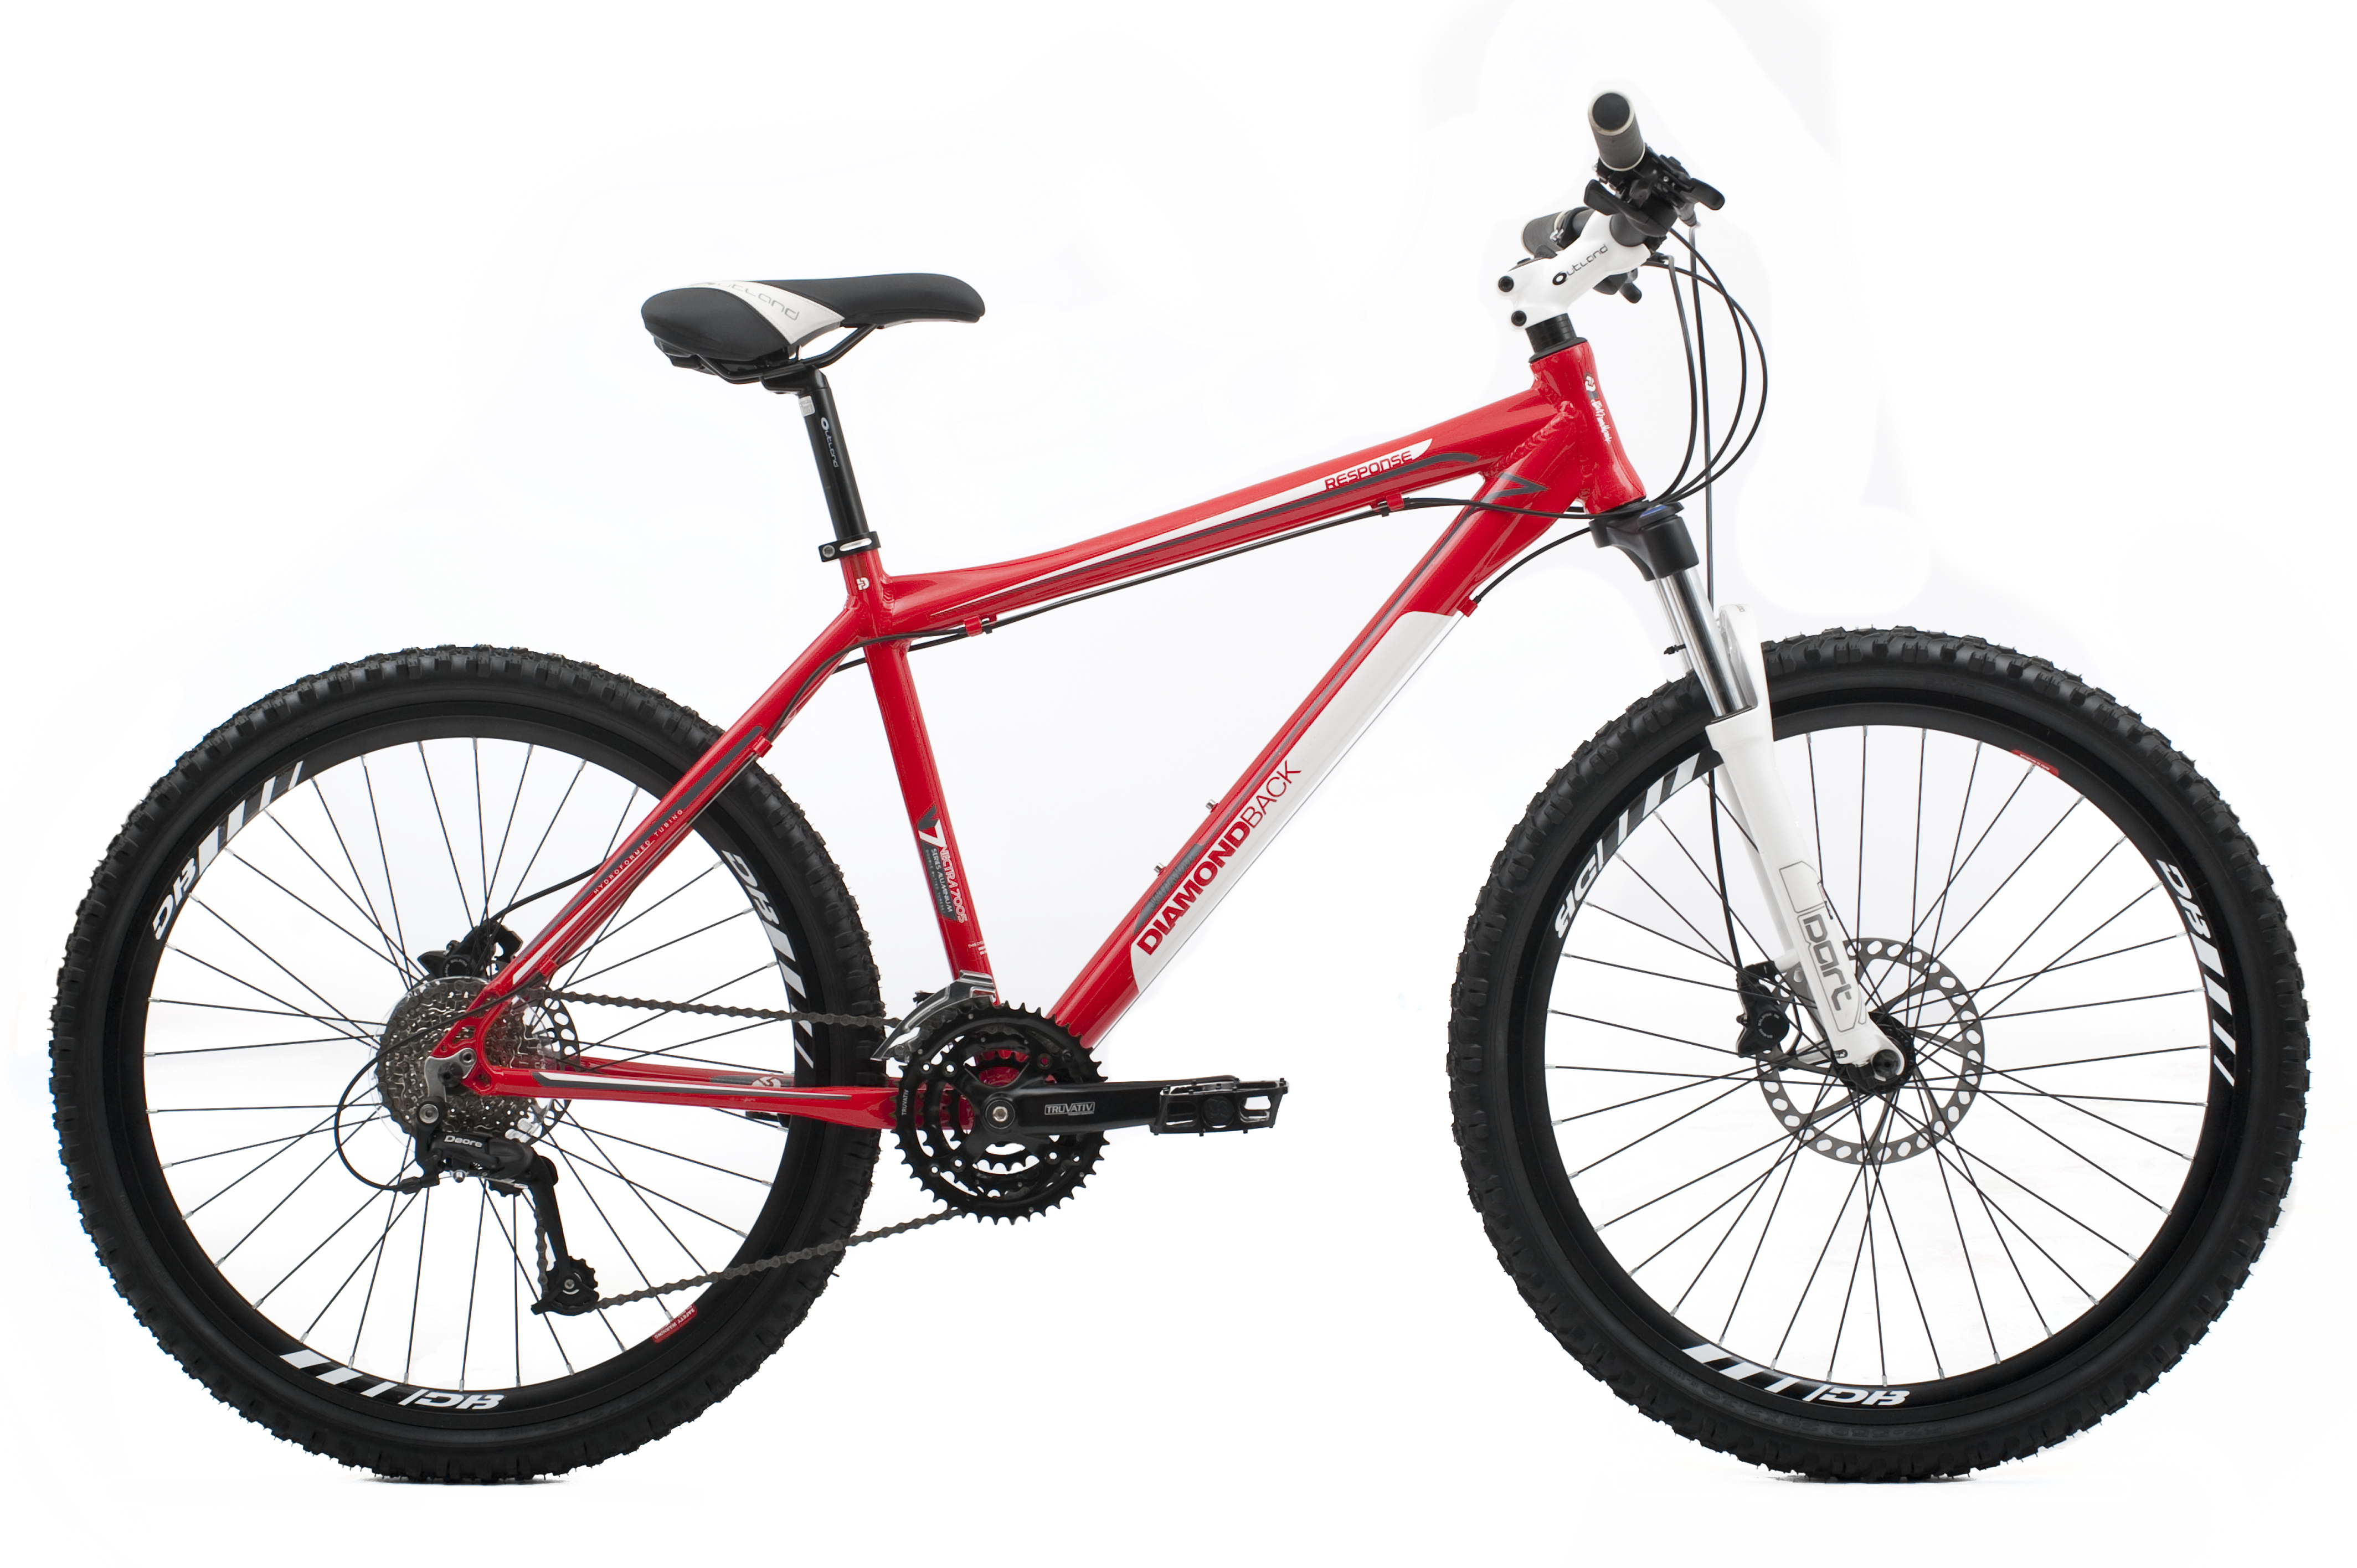 2011 DIAMONDBACK RESPONSE MENS MOUNTAIN BIKE RRP £550 ROCKSHOX HYDRAULIC BRAKES Enlarged Preview